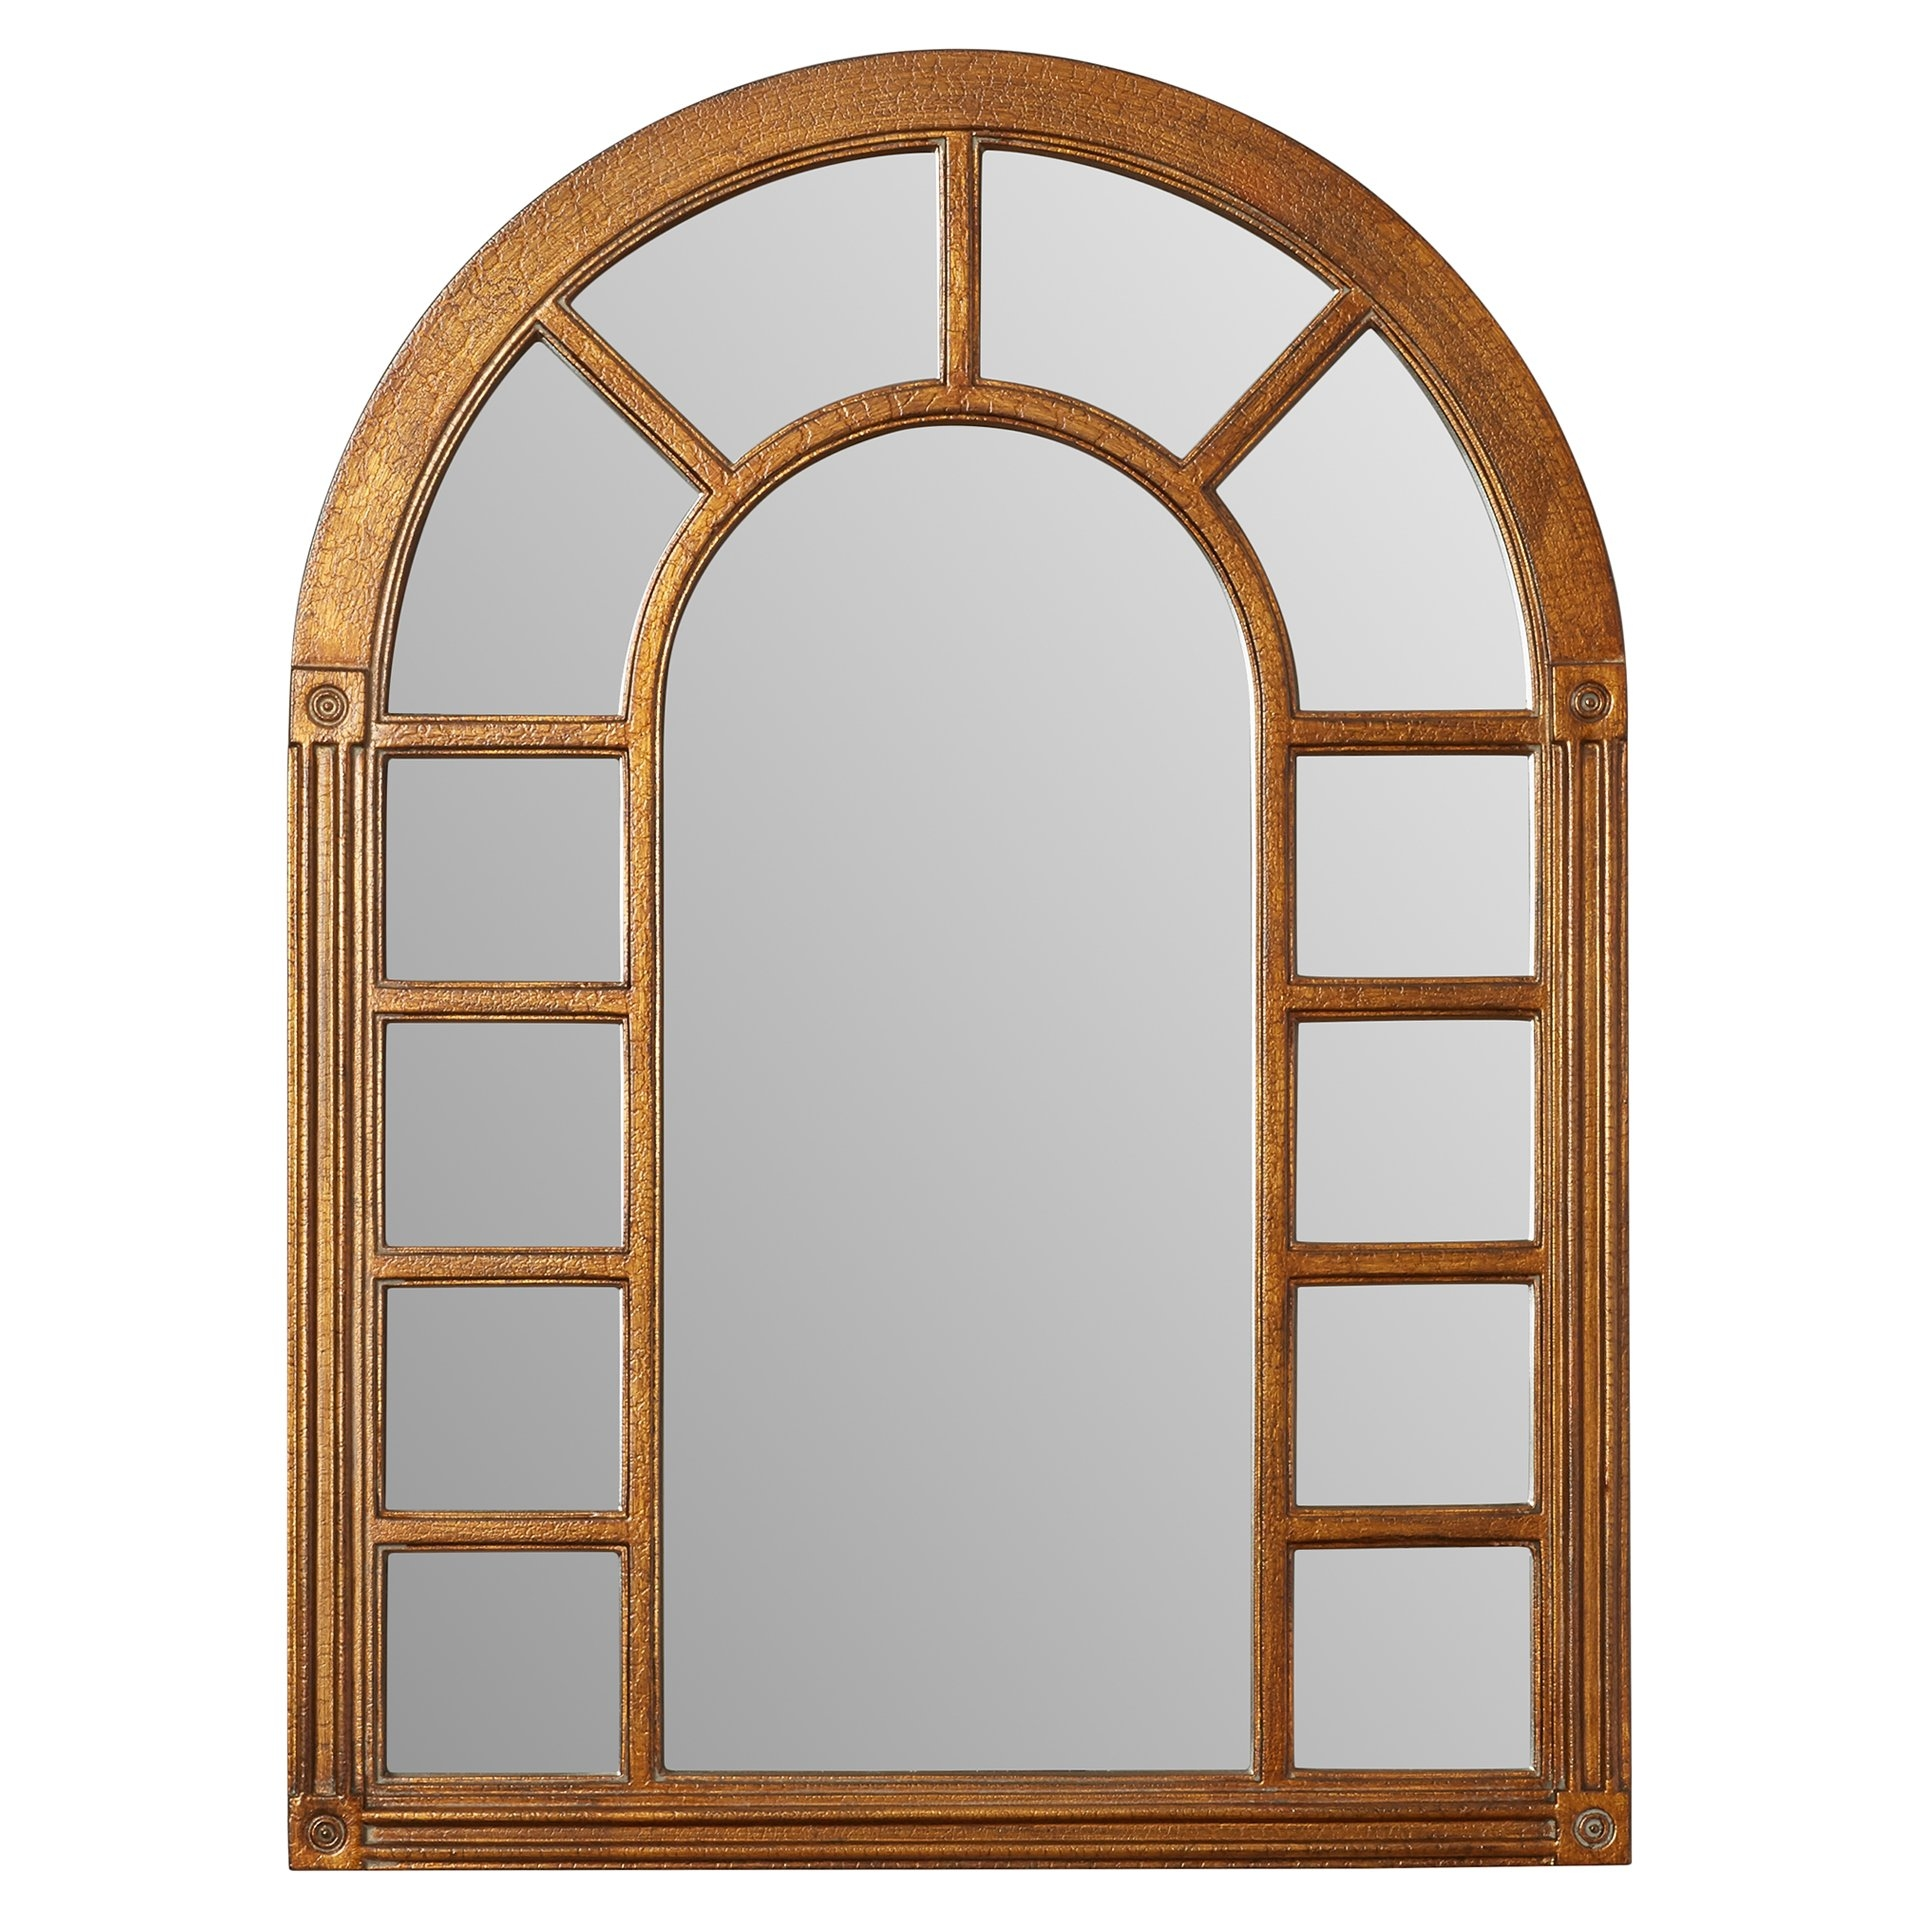 Cathedral Arched Oversized Wall Mirror Reviews Joss Main Throughout Arched Wall Mirror (Image 7 of 15)